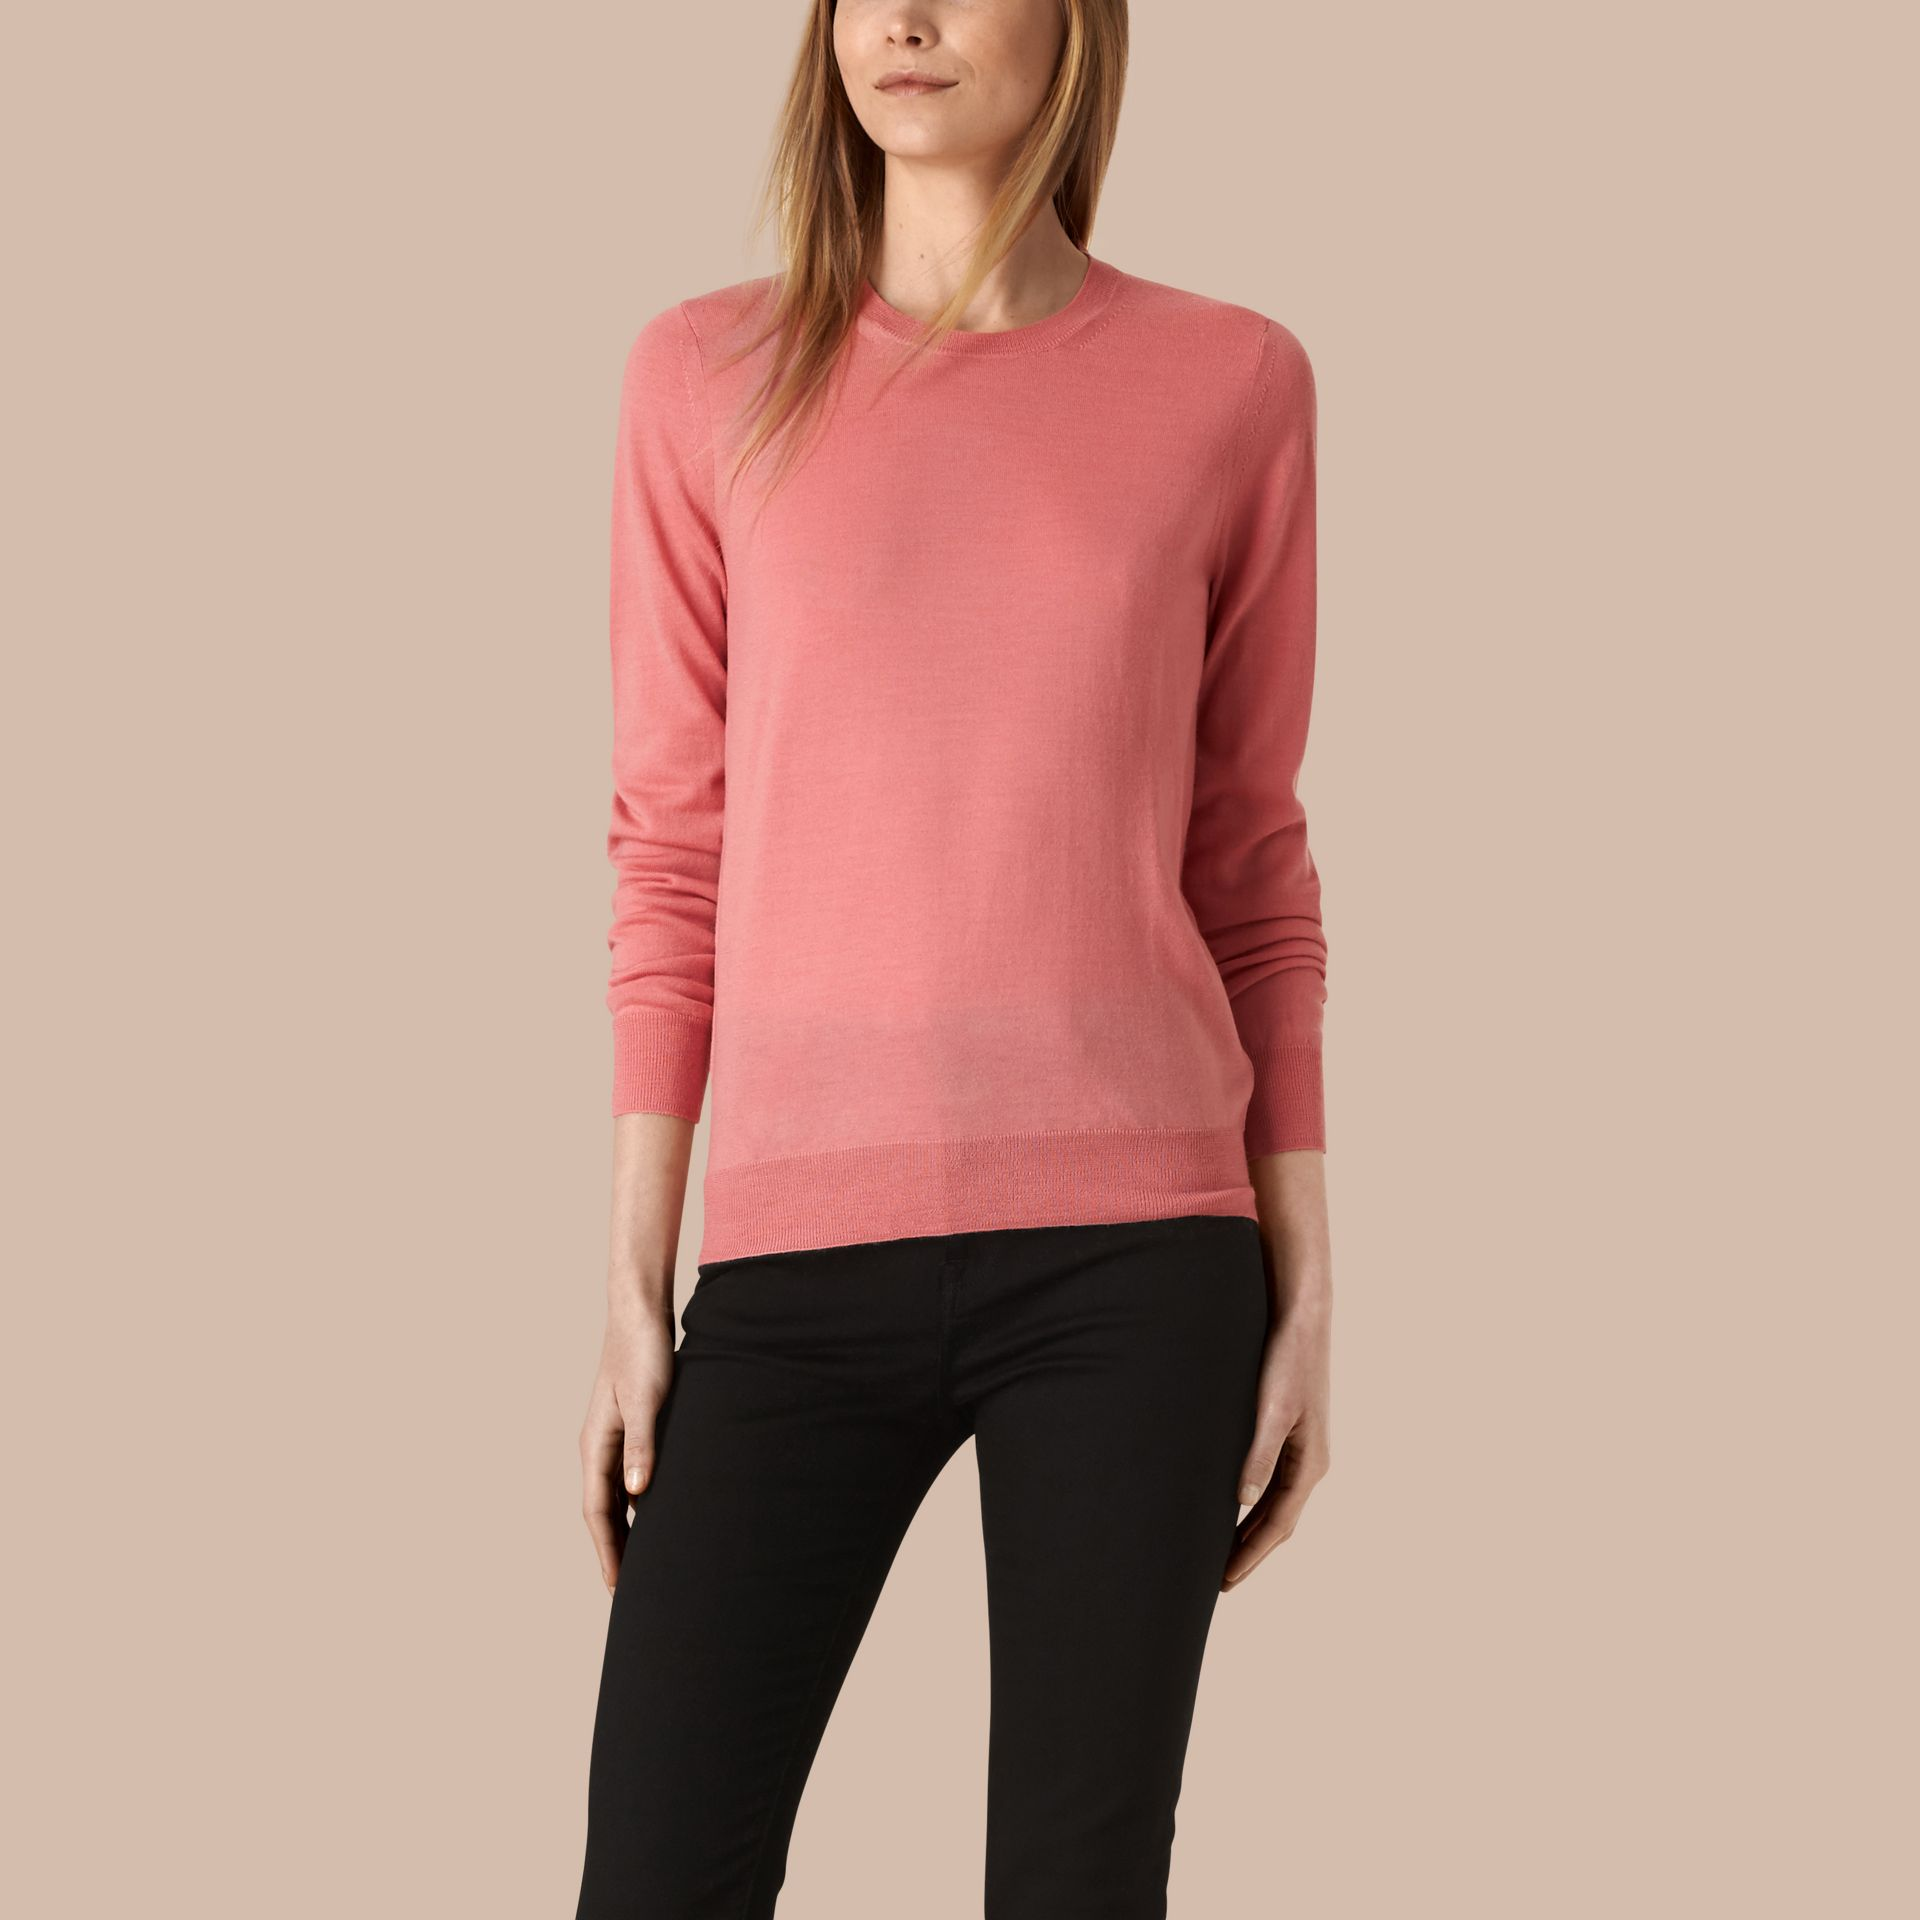 Apricot Check Detail Merino Wool Crew Neck Sweater Apricot - gallery image 1